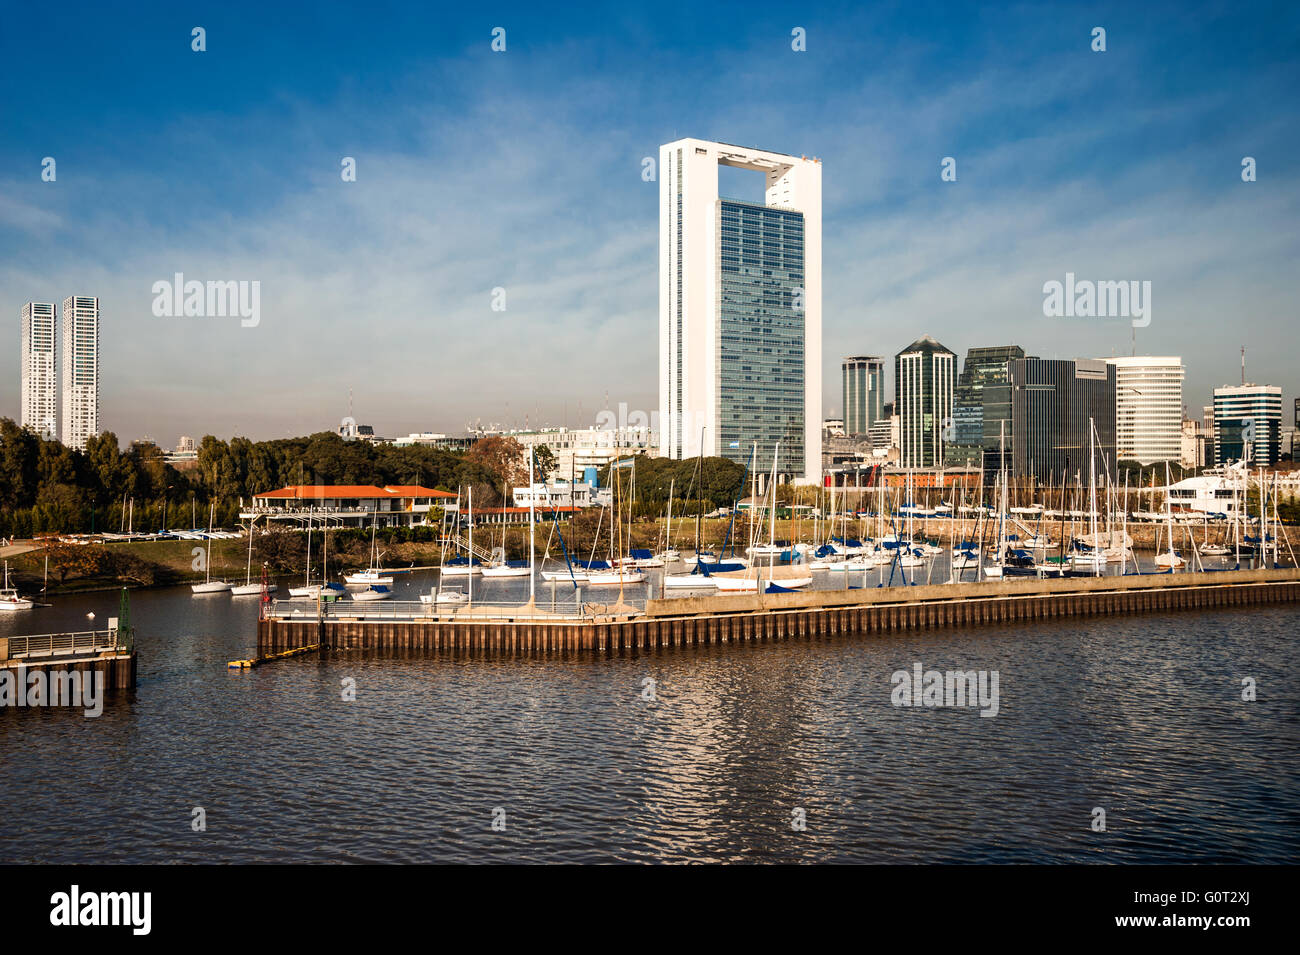 Puerto Madero, Buenos Aires, Argentina - Stock Image